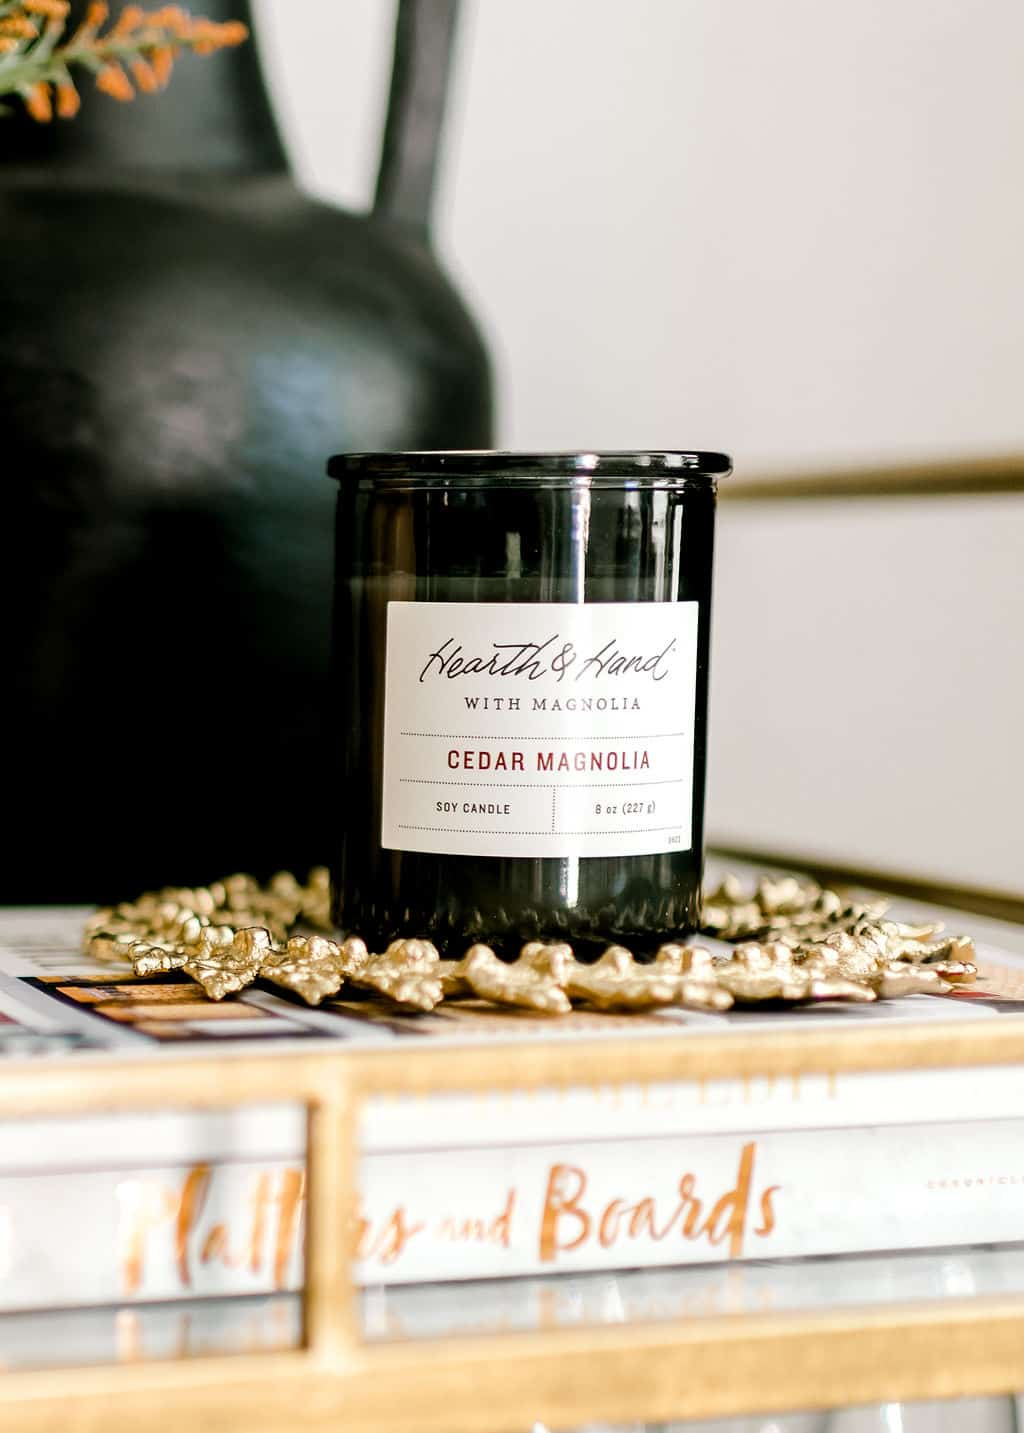 Cedar scented candle on table